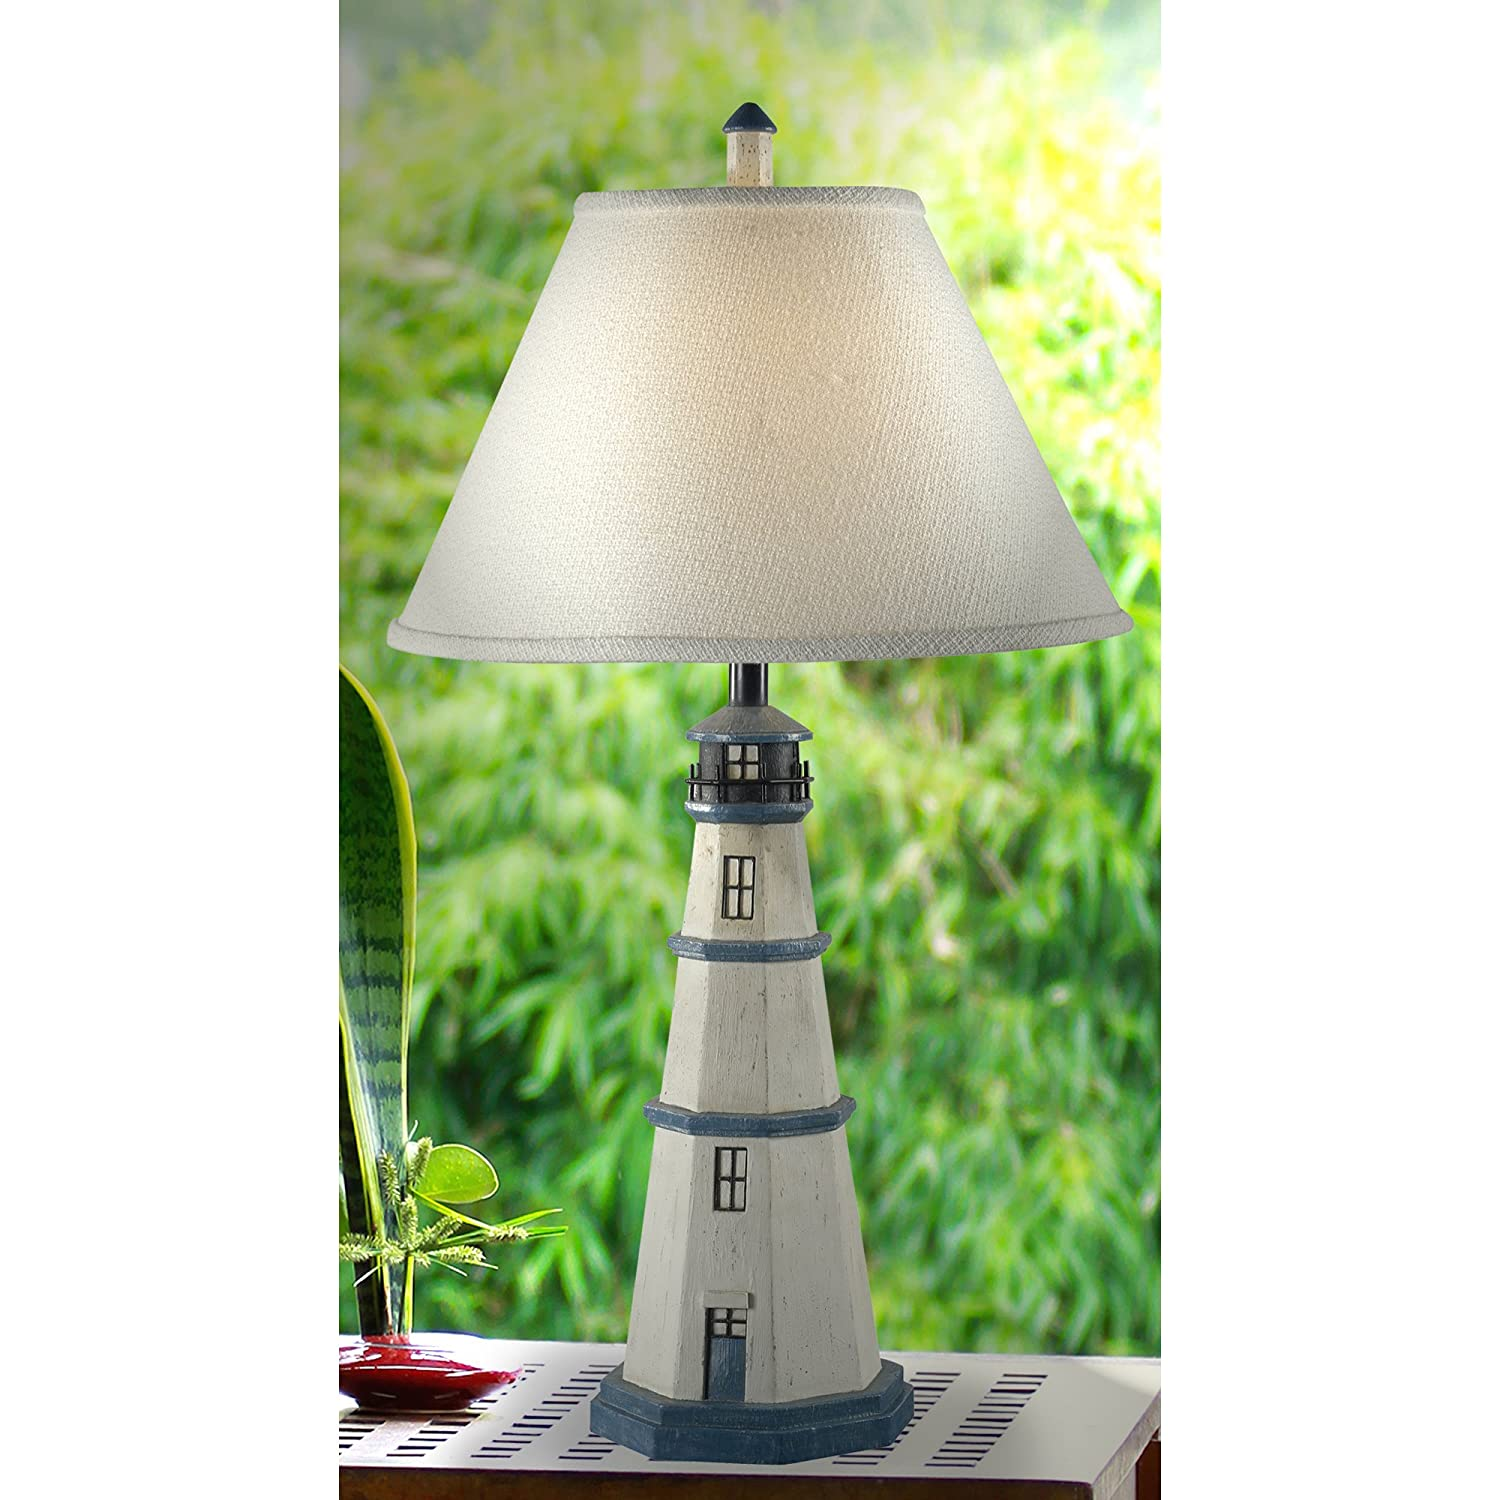 Cottage lighthouse lamp 3 colors - Kenroy Home 20140aw Nantucket Table Lamp Antique White Lighthouse Lamps Amazon Com